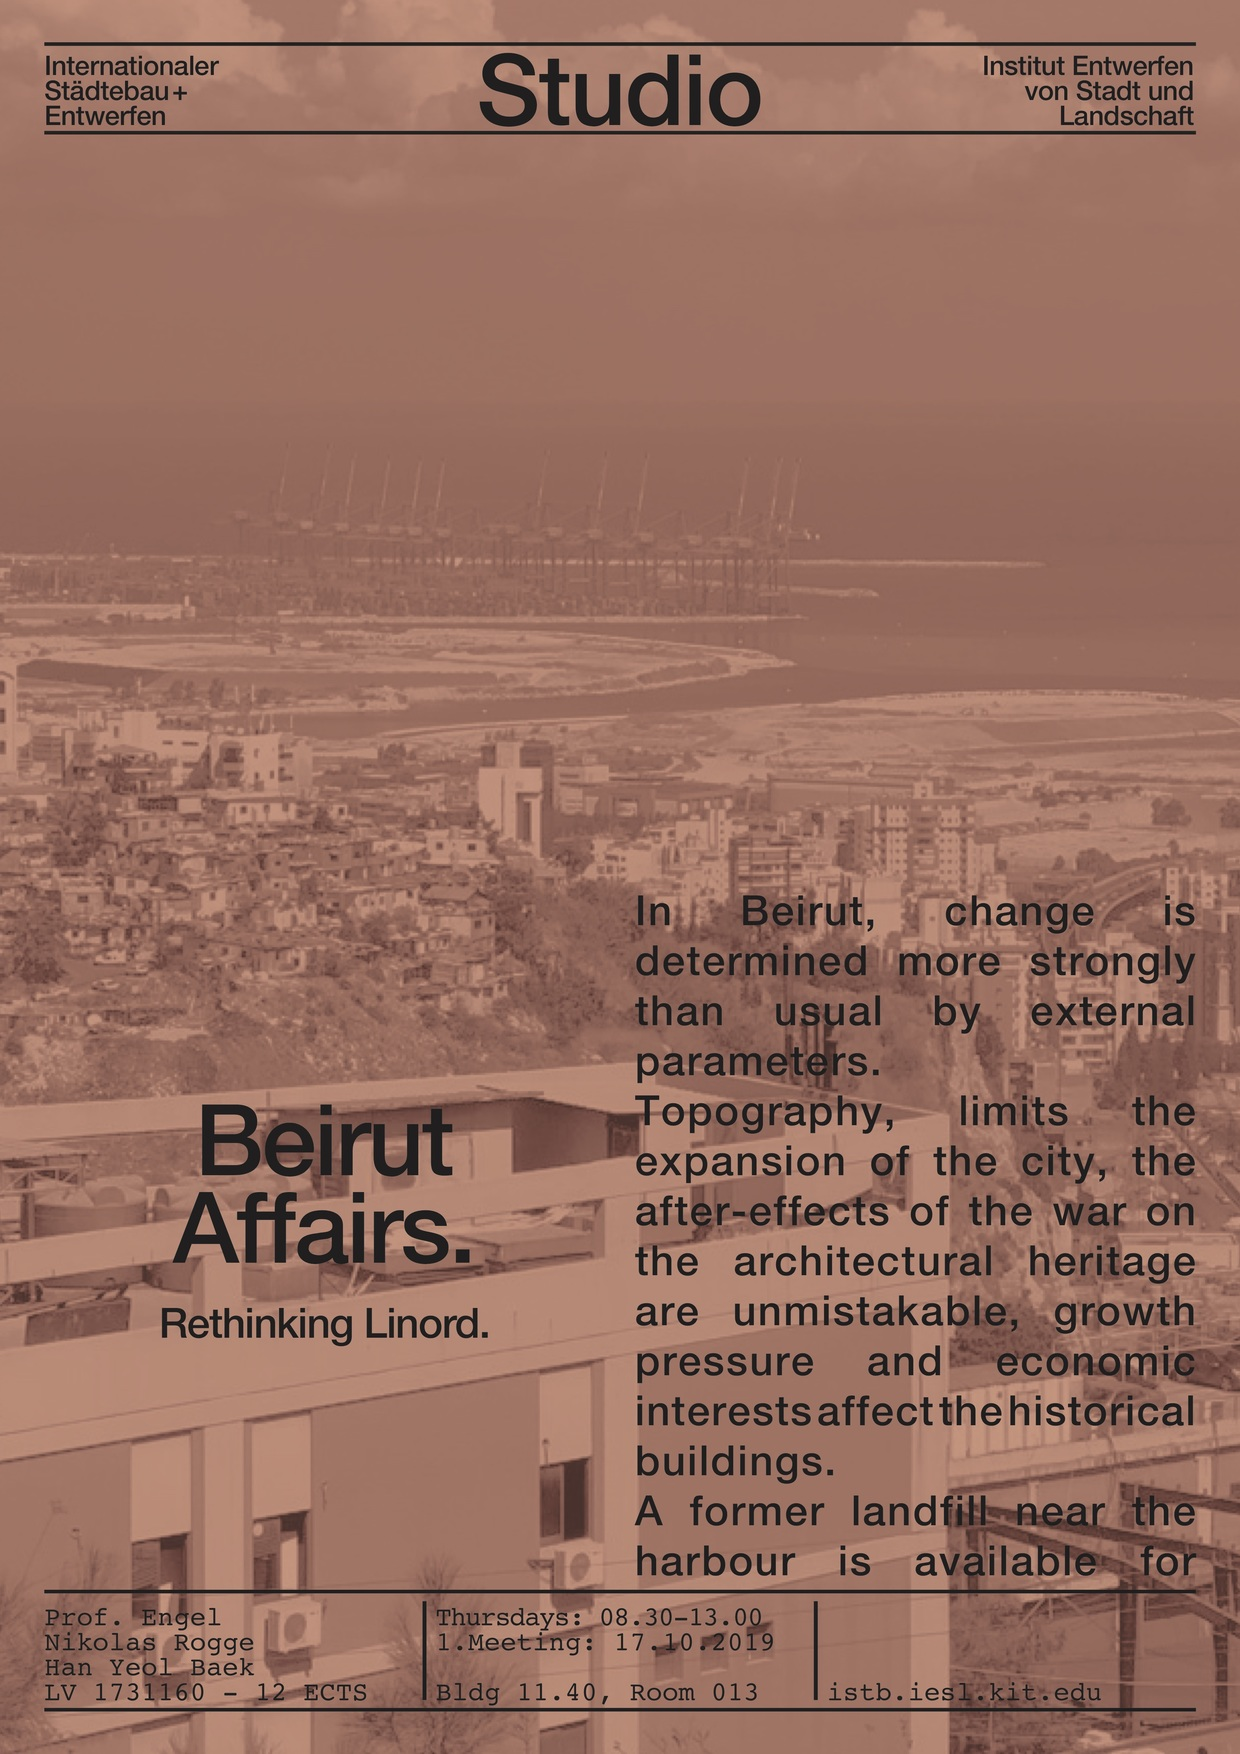 Beirut_Affairs_Rethinking_Linord